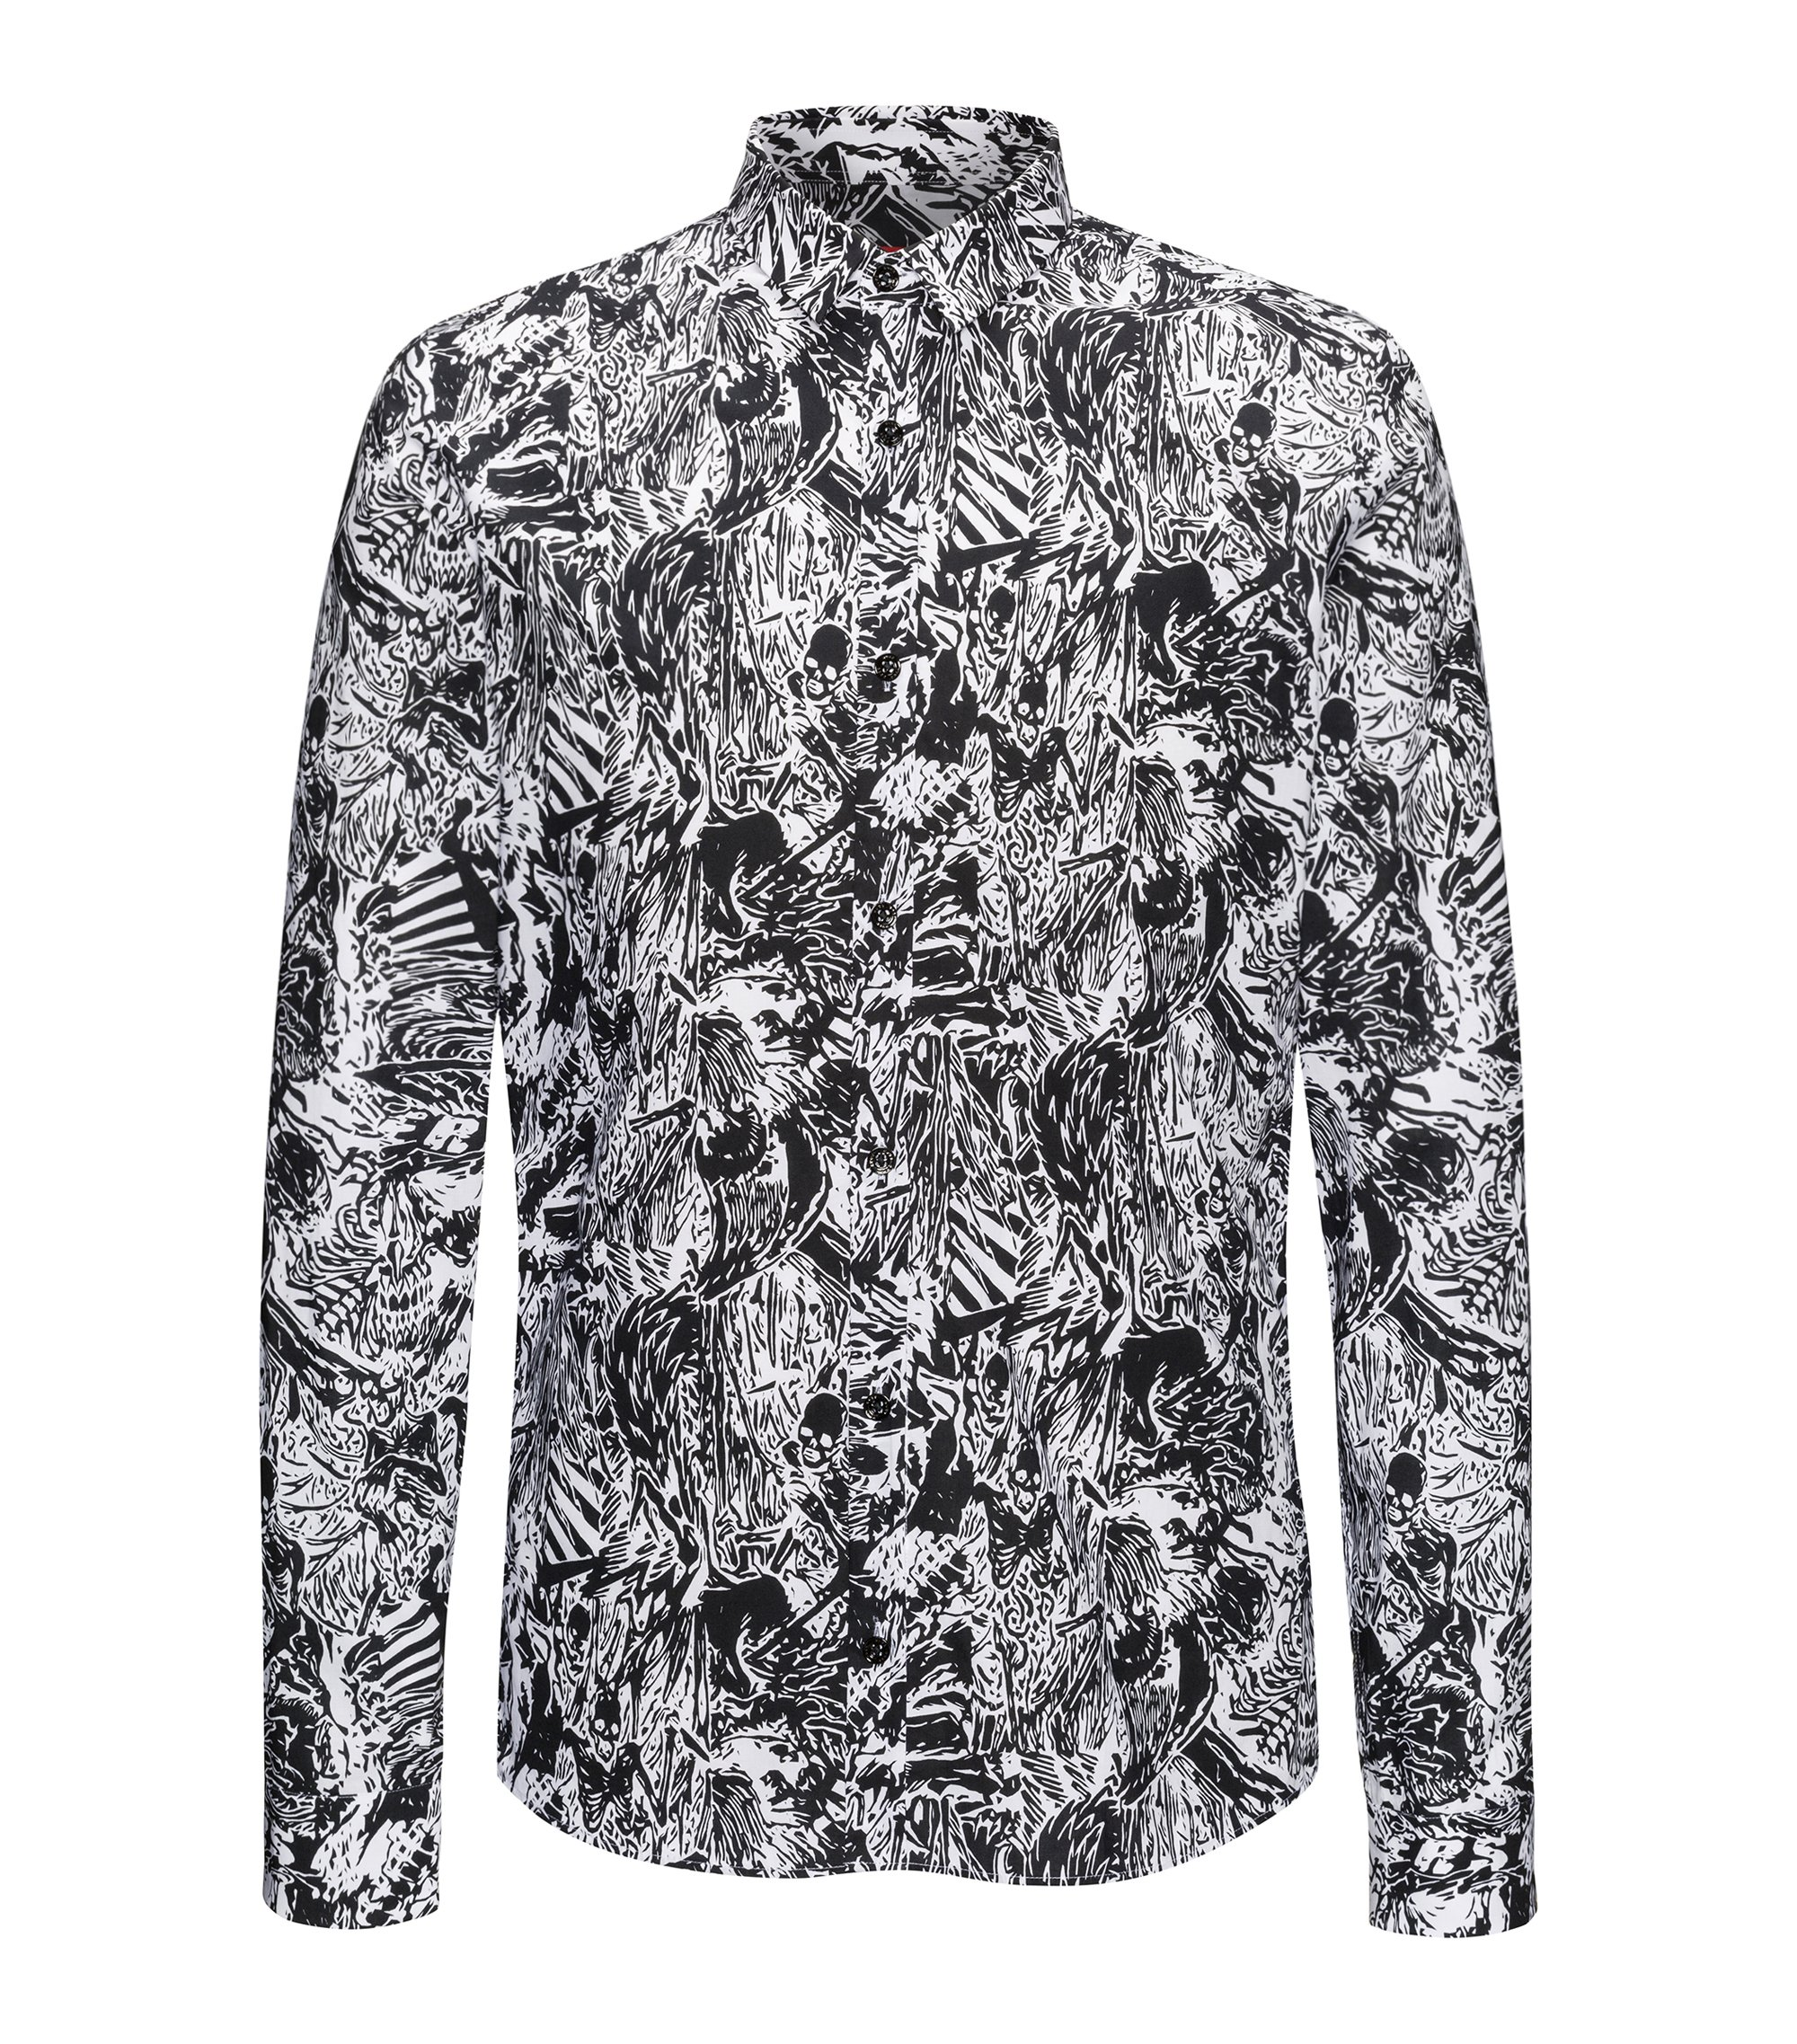 Extra-slim-fit cotton shirt in Hawaiian skeletons print, Black